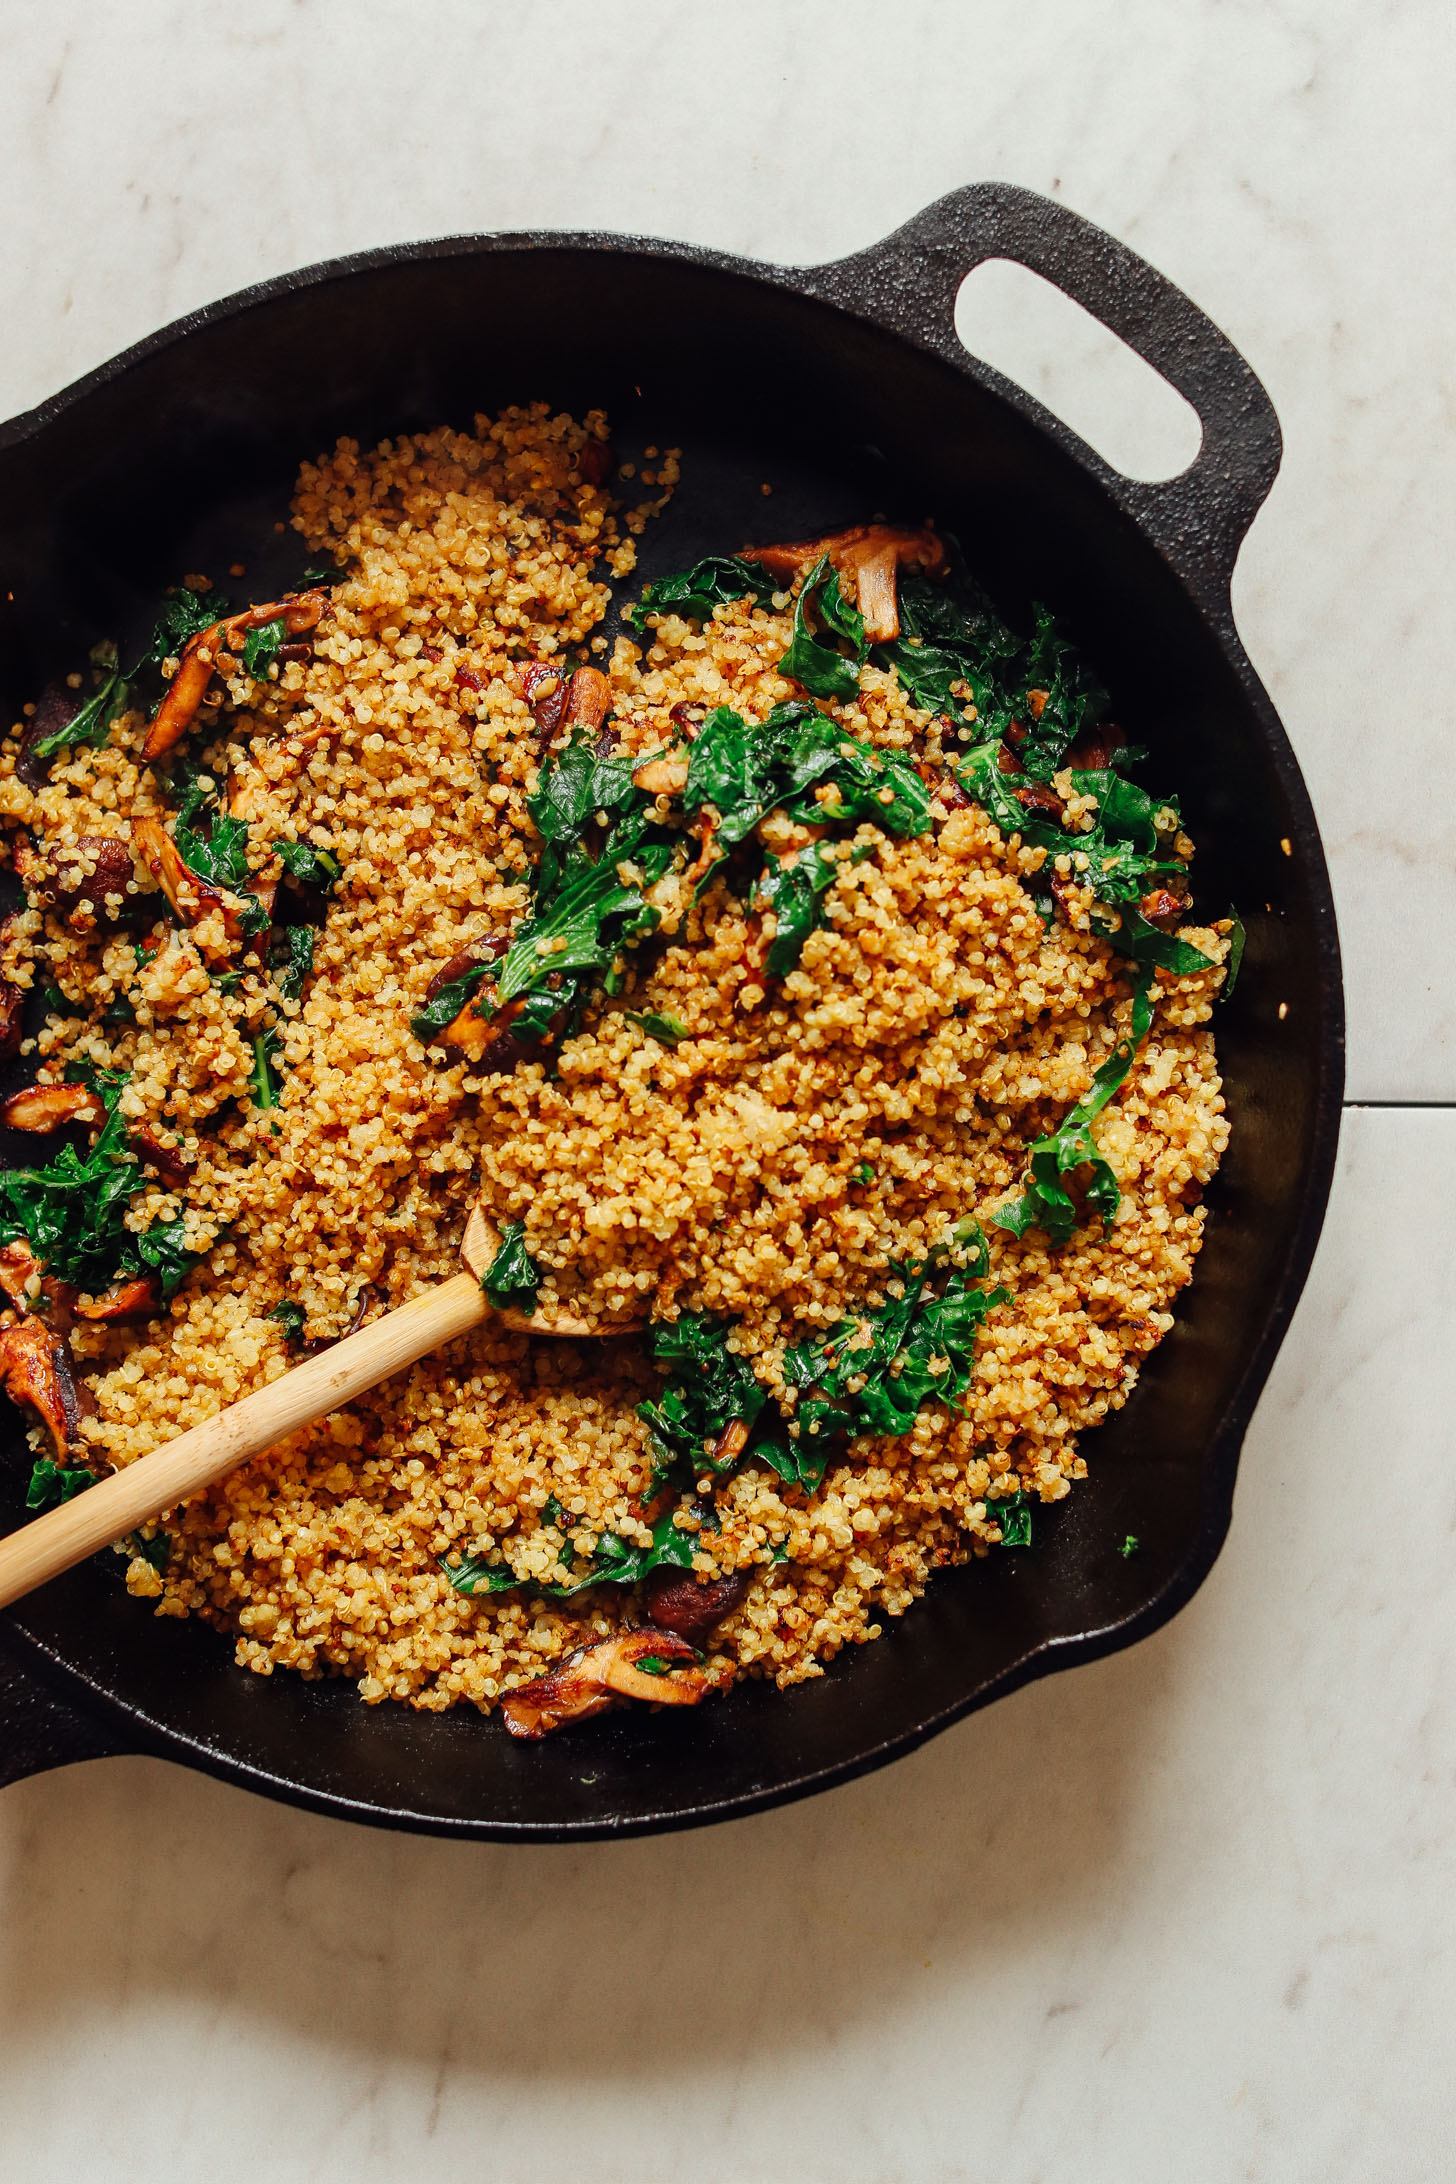 Cooking quinoa, mushrooms, and kale in a cast-iron skillet for our vegan stuffed butternut squash recipe